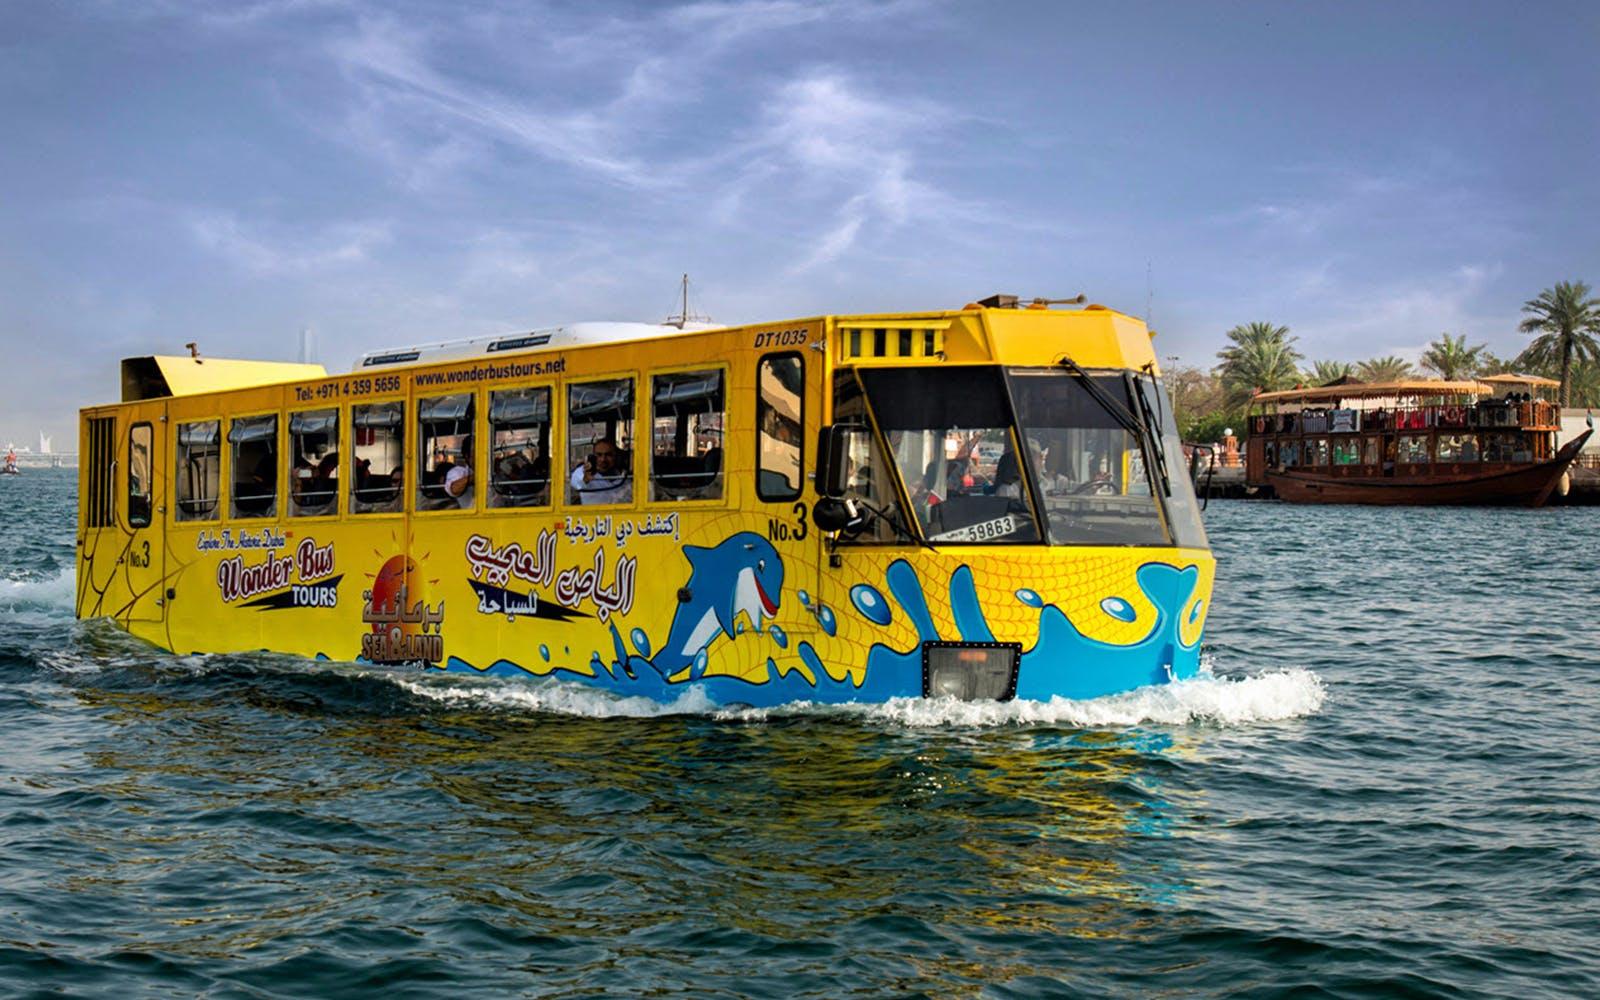 dubai wonderbus tour - sea & land adventure-2